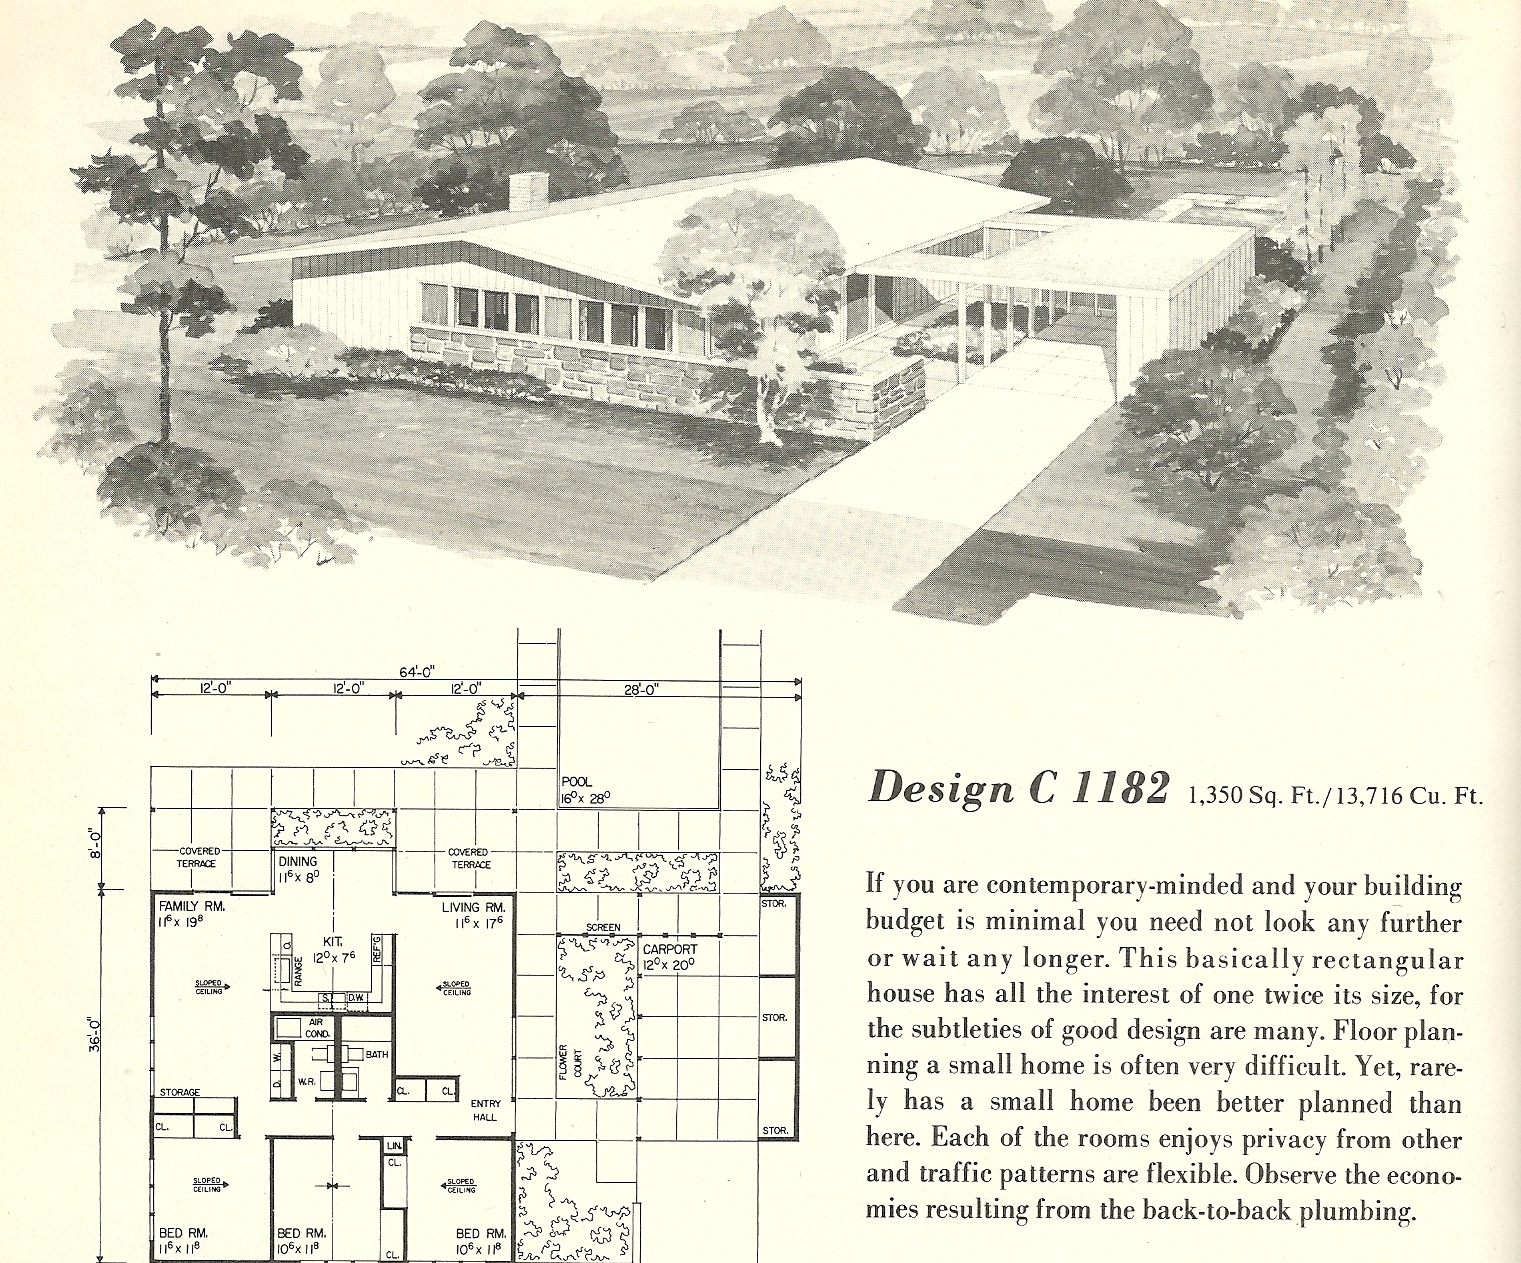 Vintage house plans 1182 antique alter ego for Mid century home plans